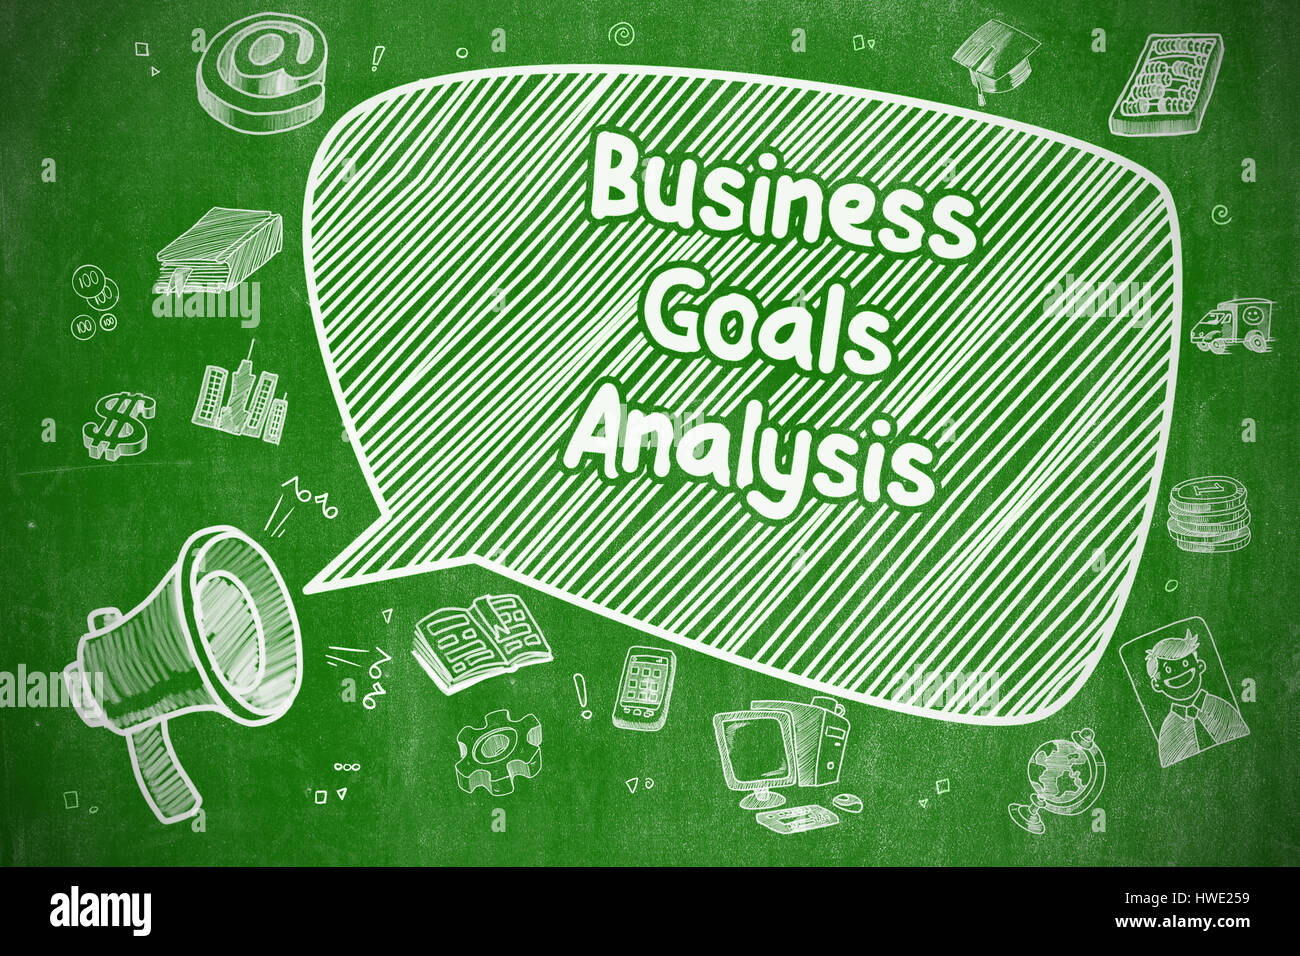 Business Goals Analysis - Business Concept. Stock Photo